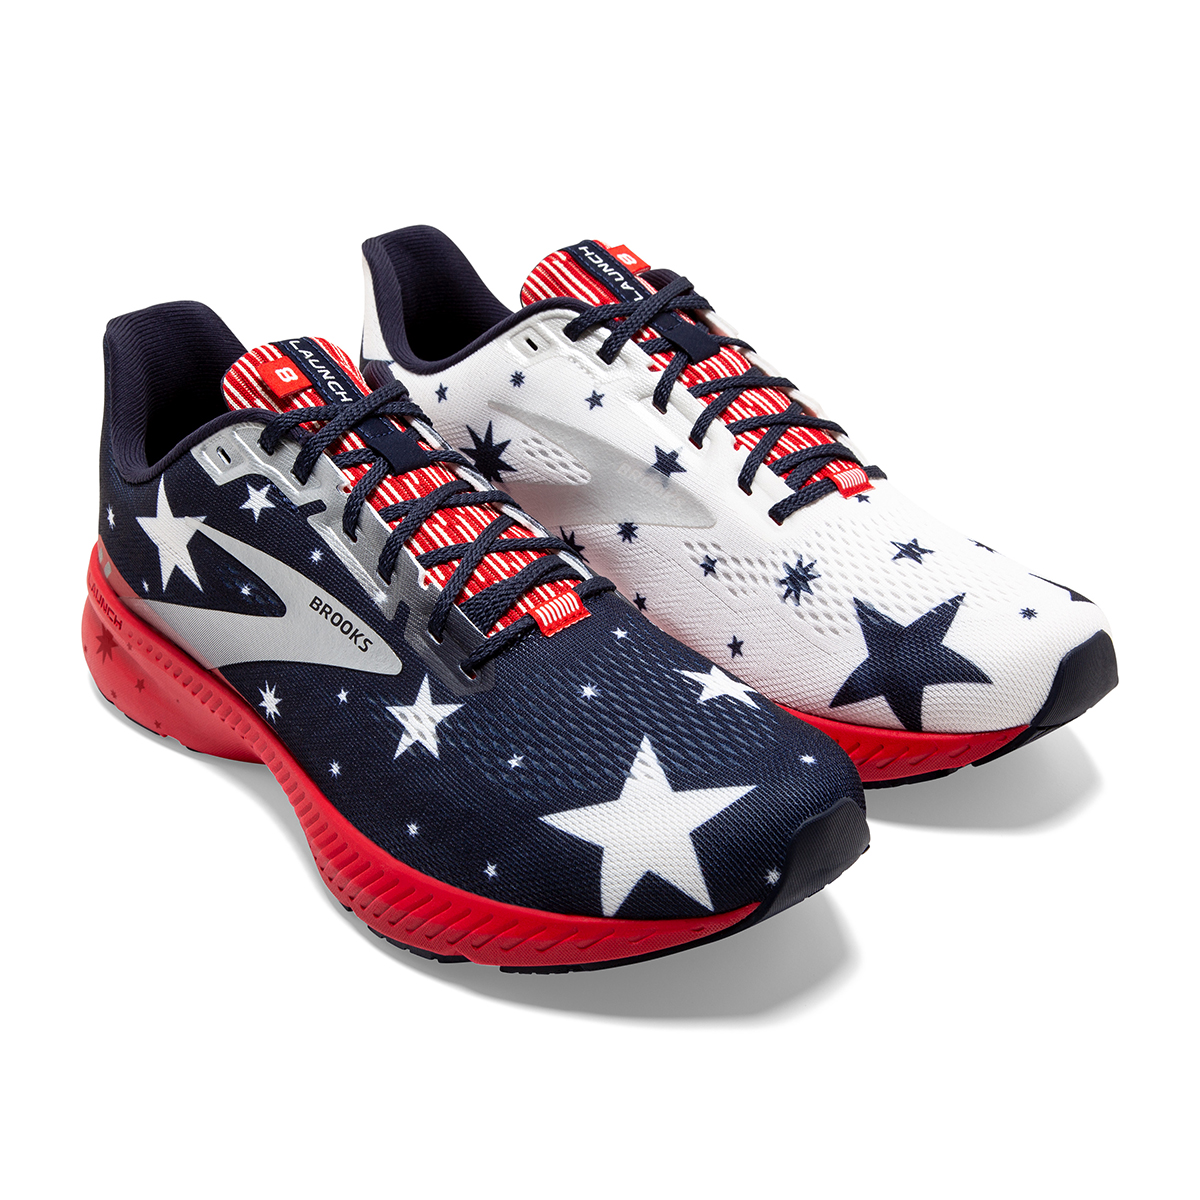 Women's Brooks Launch 8 Running Shoe - Color: Blue/Red/Silver - Size: 5 - Width: Regular, Blue/Red/Silver, large, image 3